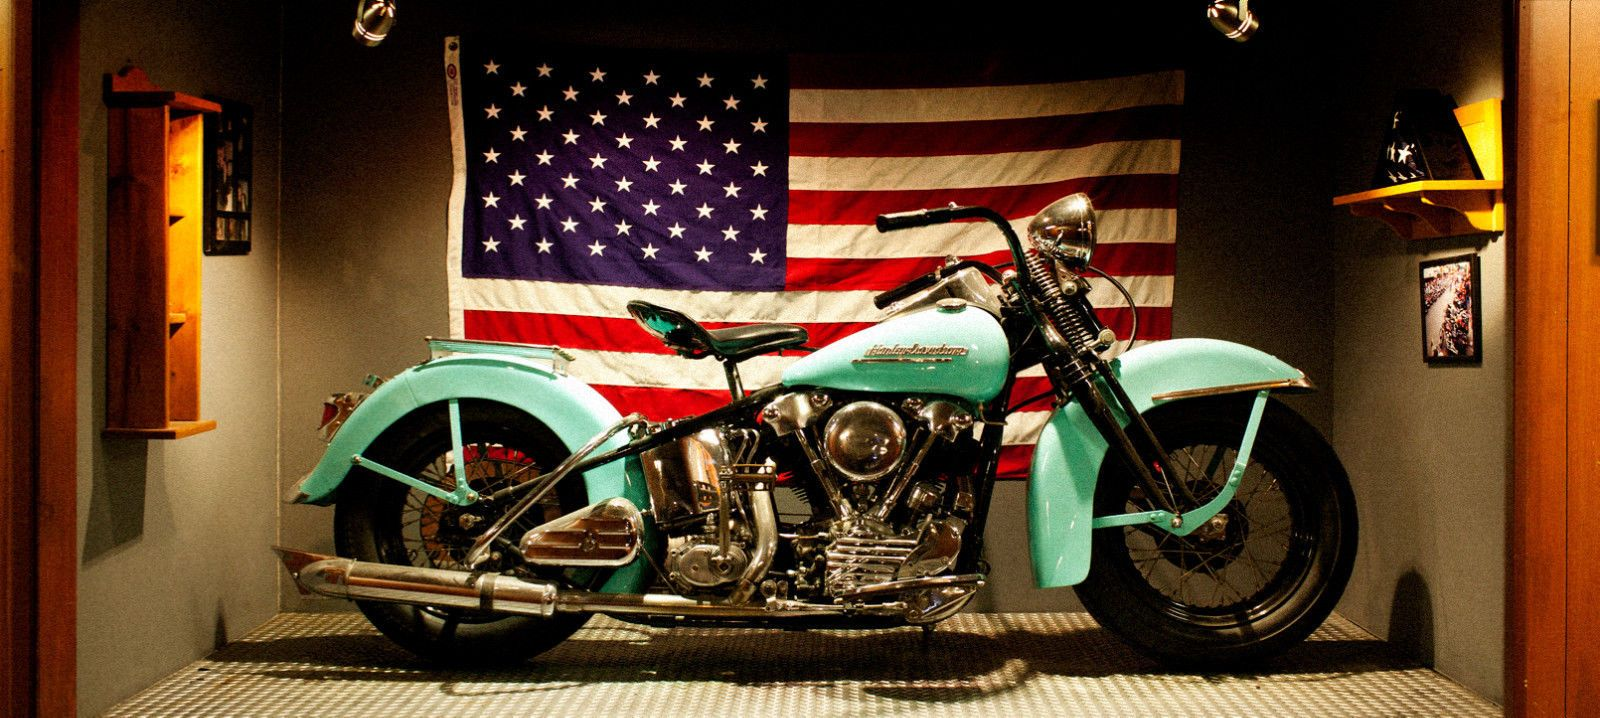 Harley Davidson Knucklehead Motor | Sons of Anarchy Bikes | Jax Sons of Anarchy Bike